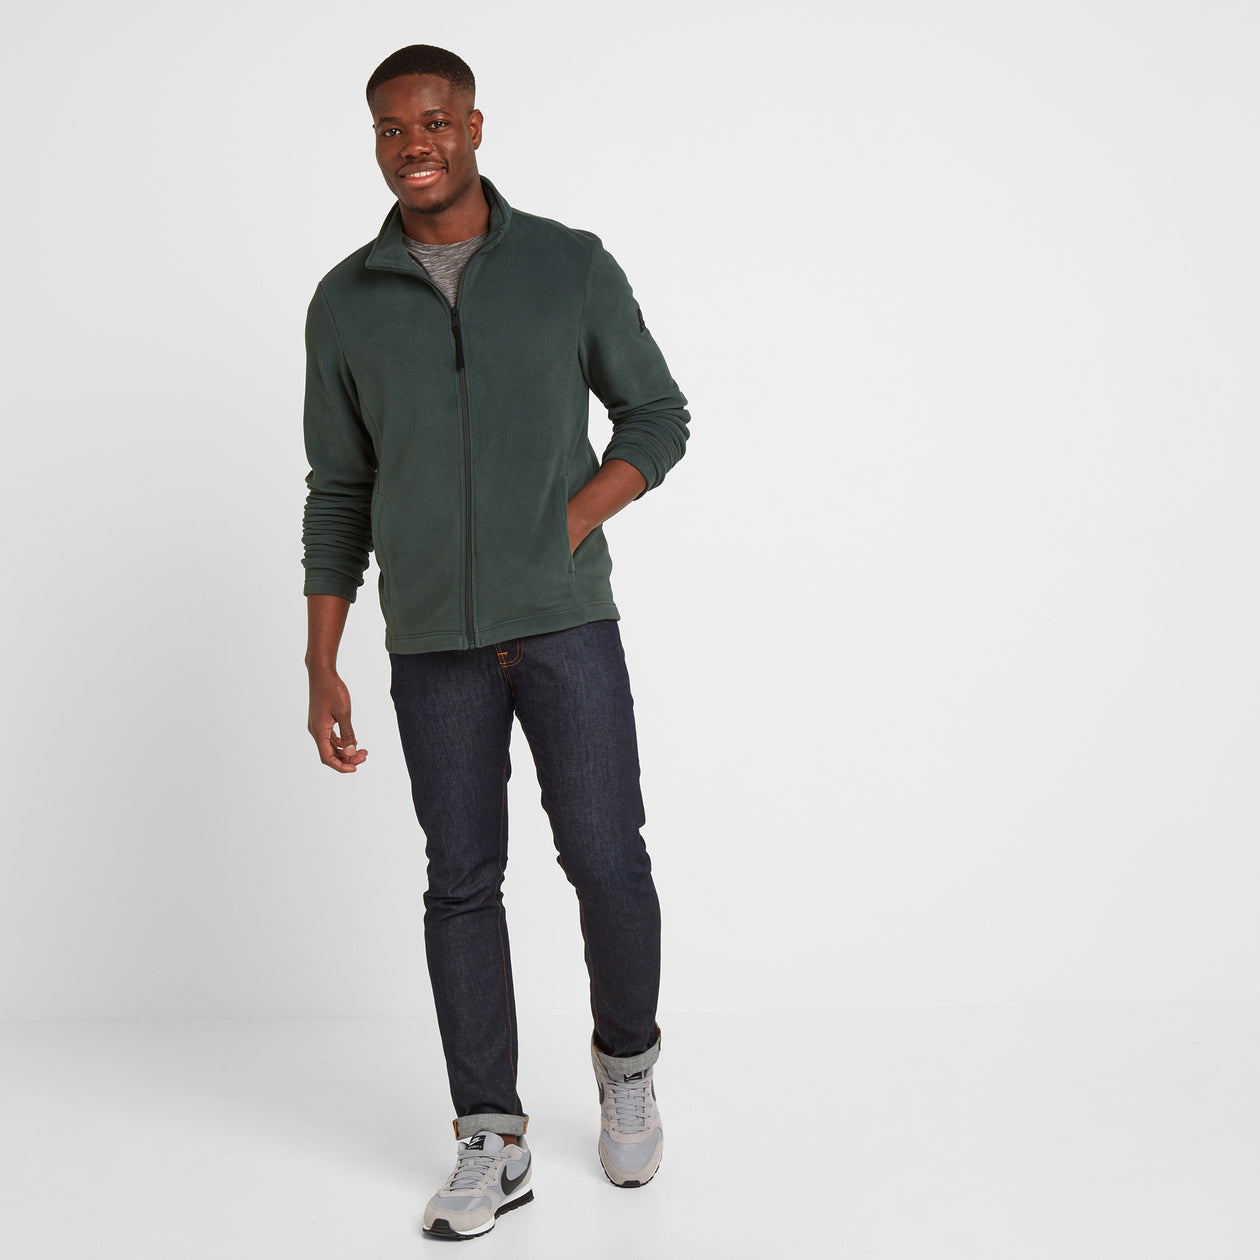 Shire Mens Fleece Jacket - Pine Green image 4